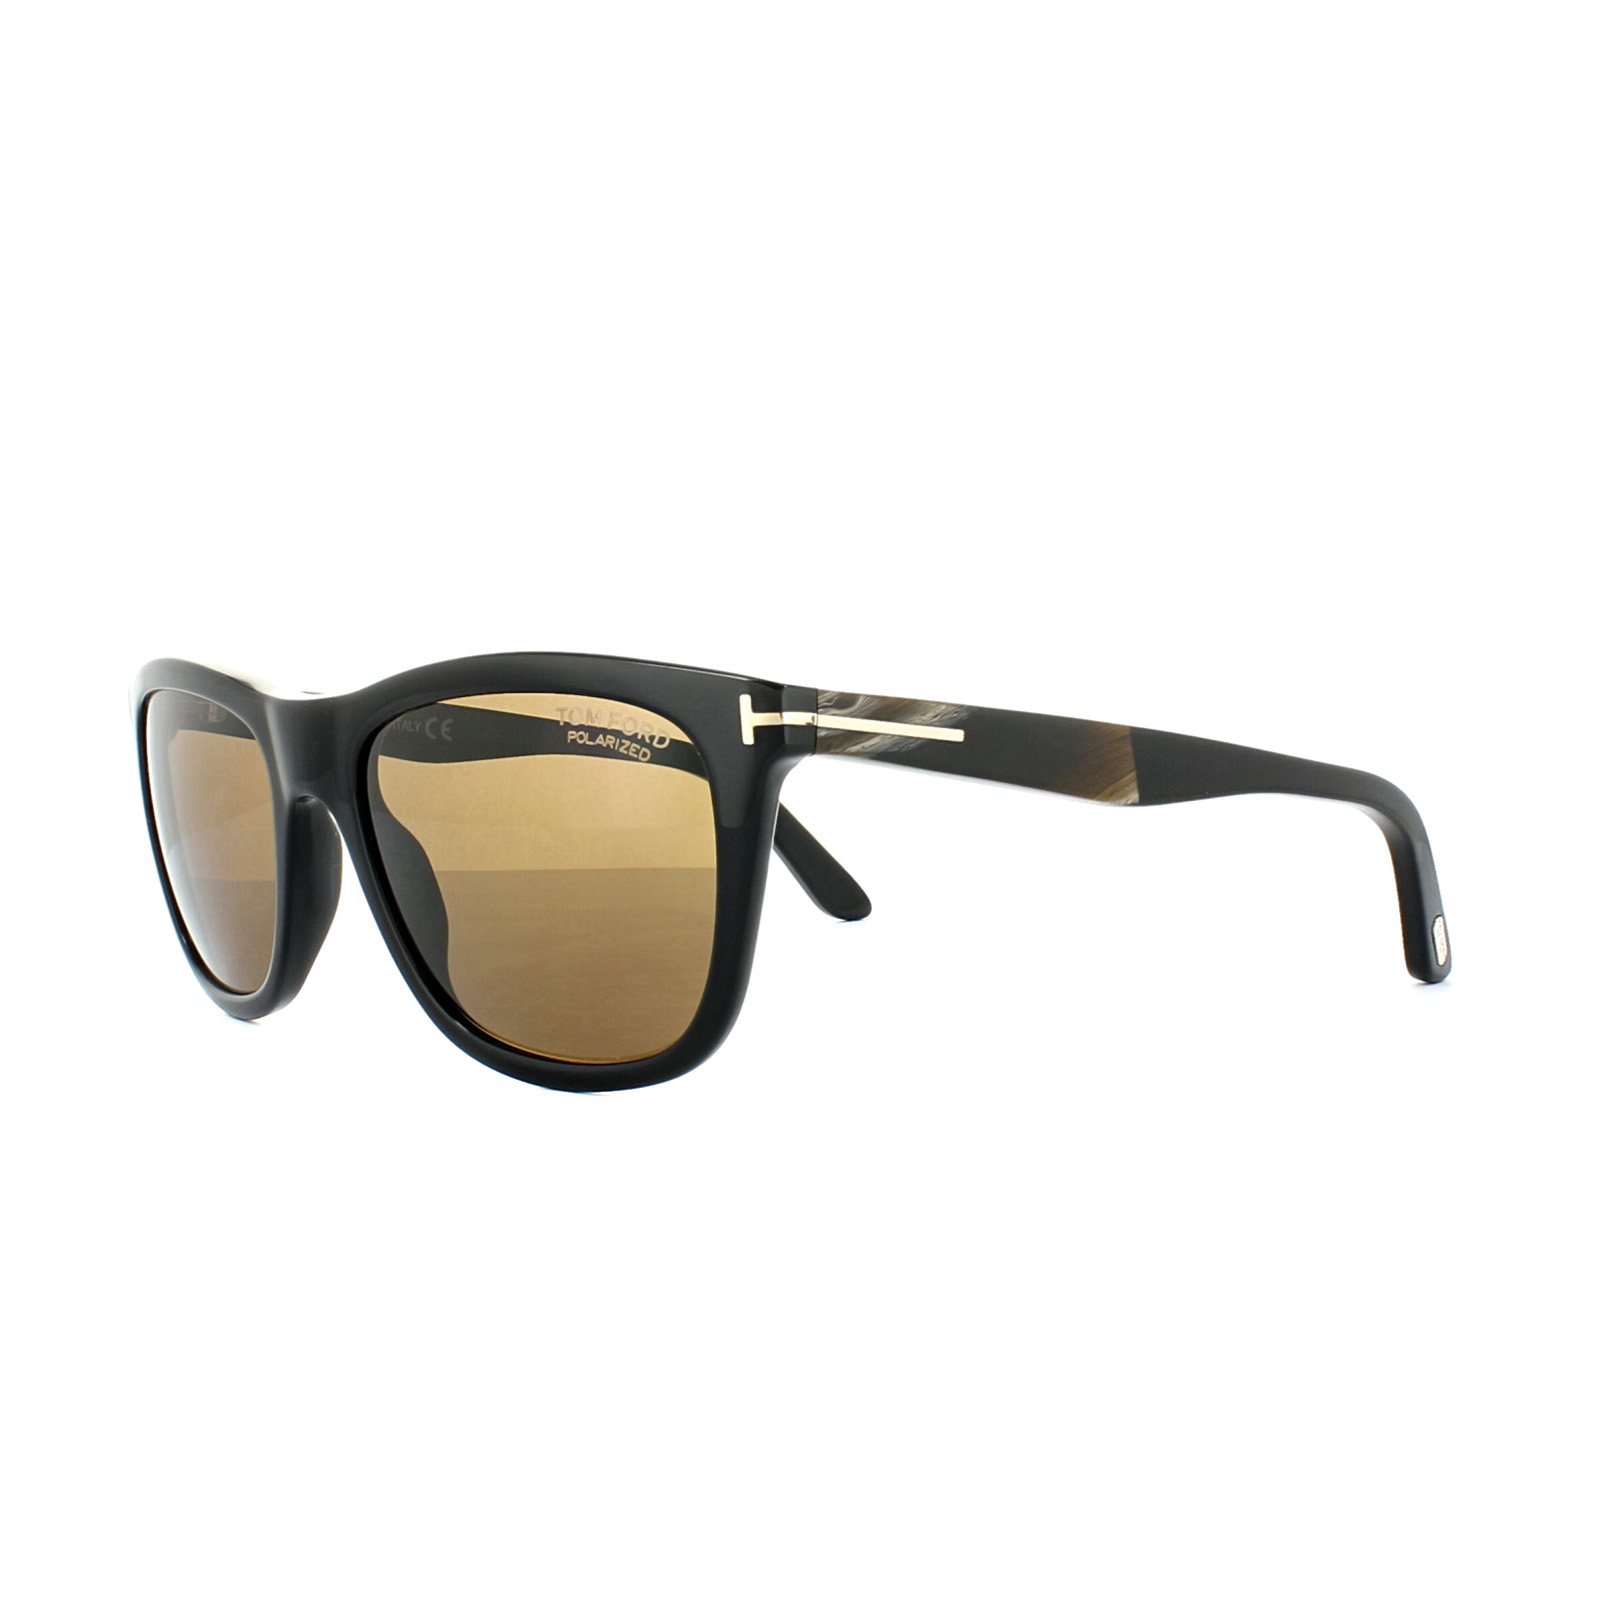 9f443ad42e Details about Tom Ford Sunglasses 0500 Andrew 01H Shiny Black Brown  Polarized